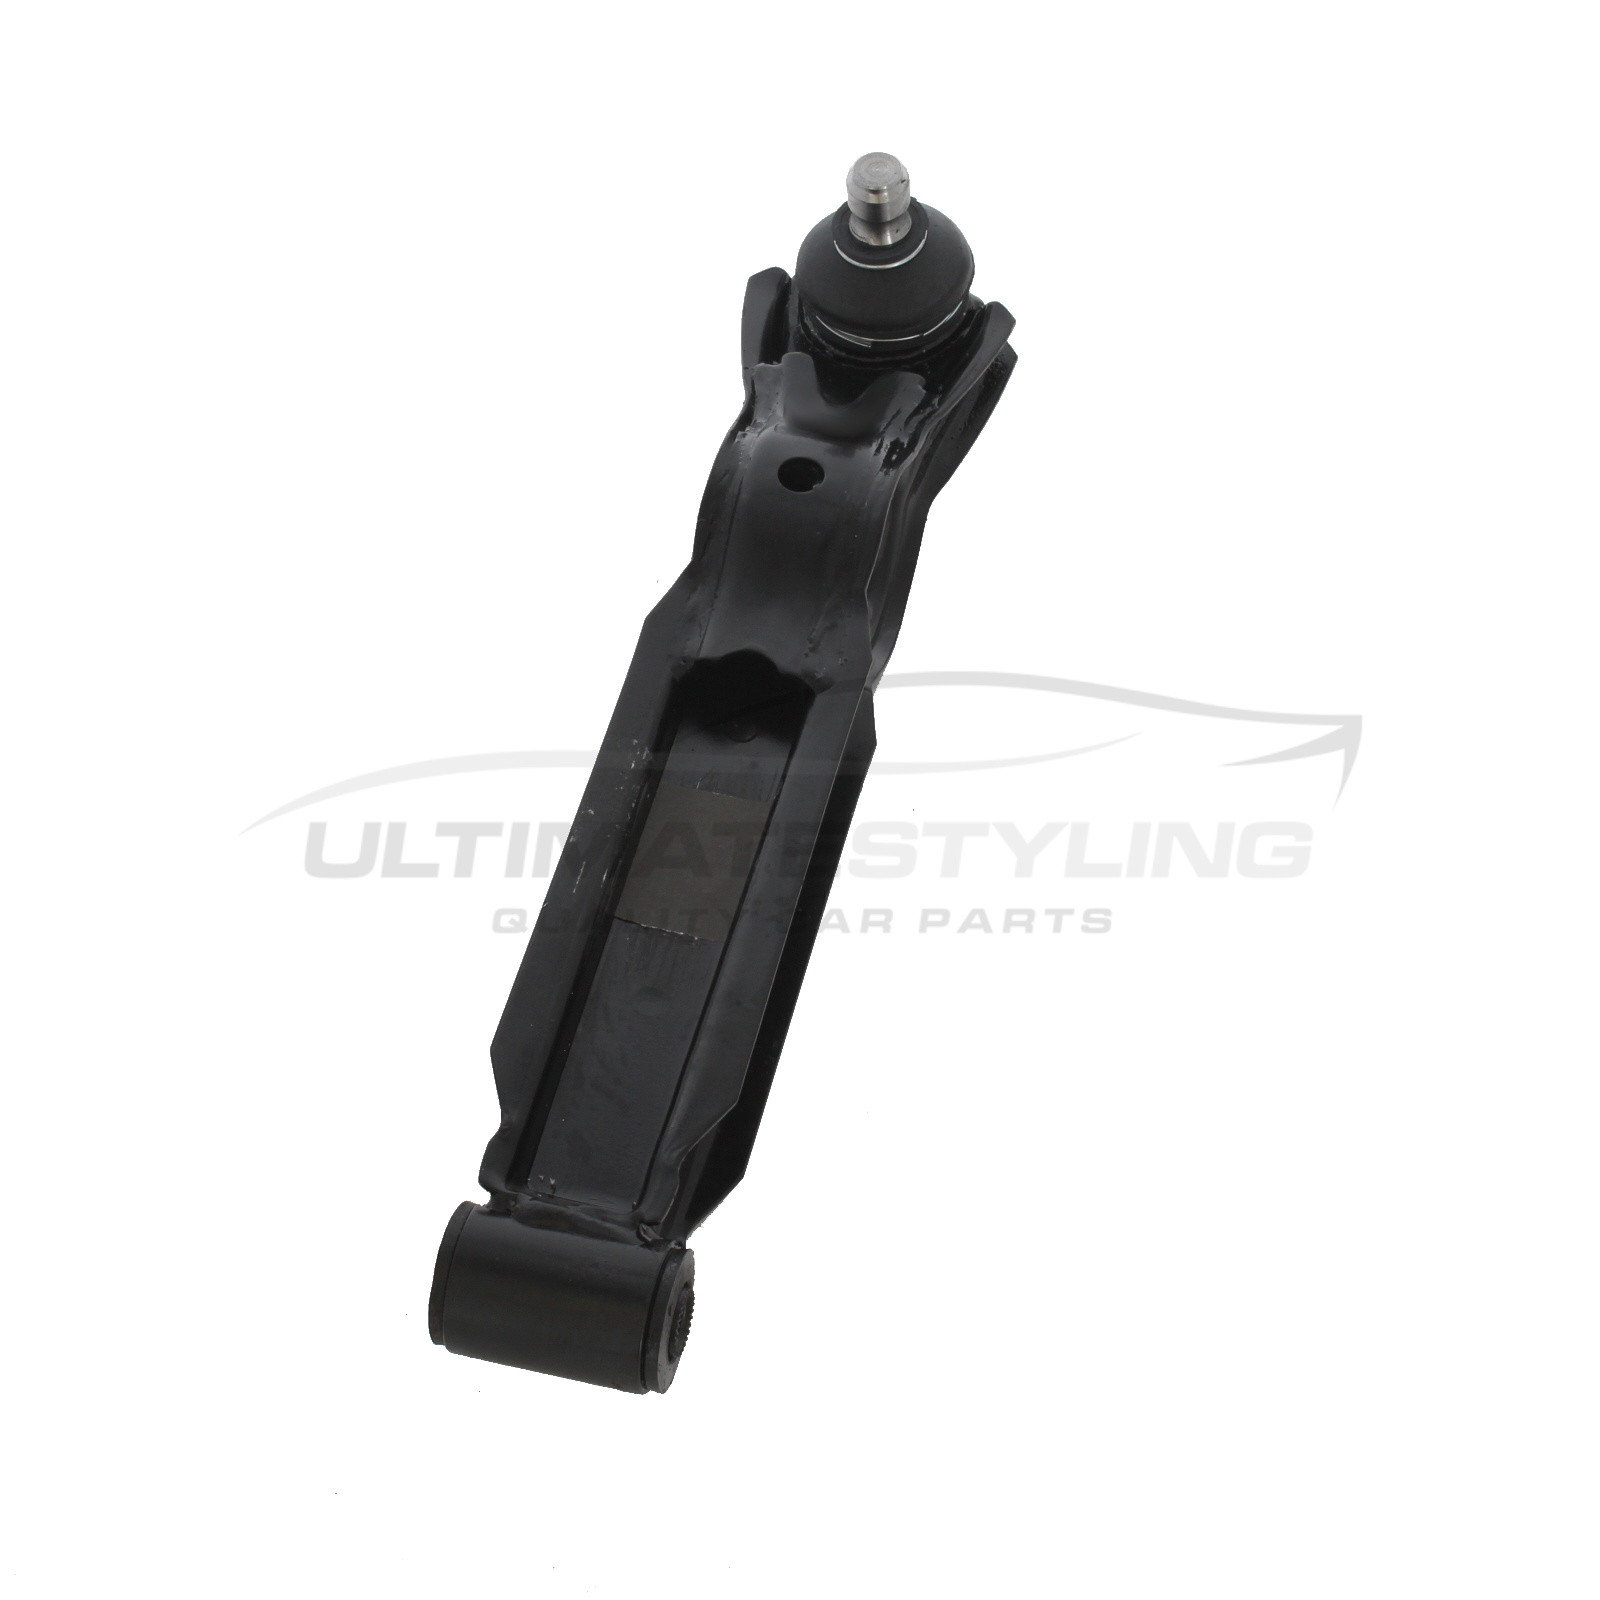 DAEWOO MATIZ  AGILA WAGON R LOWER SUSPENSION ARM LH RH